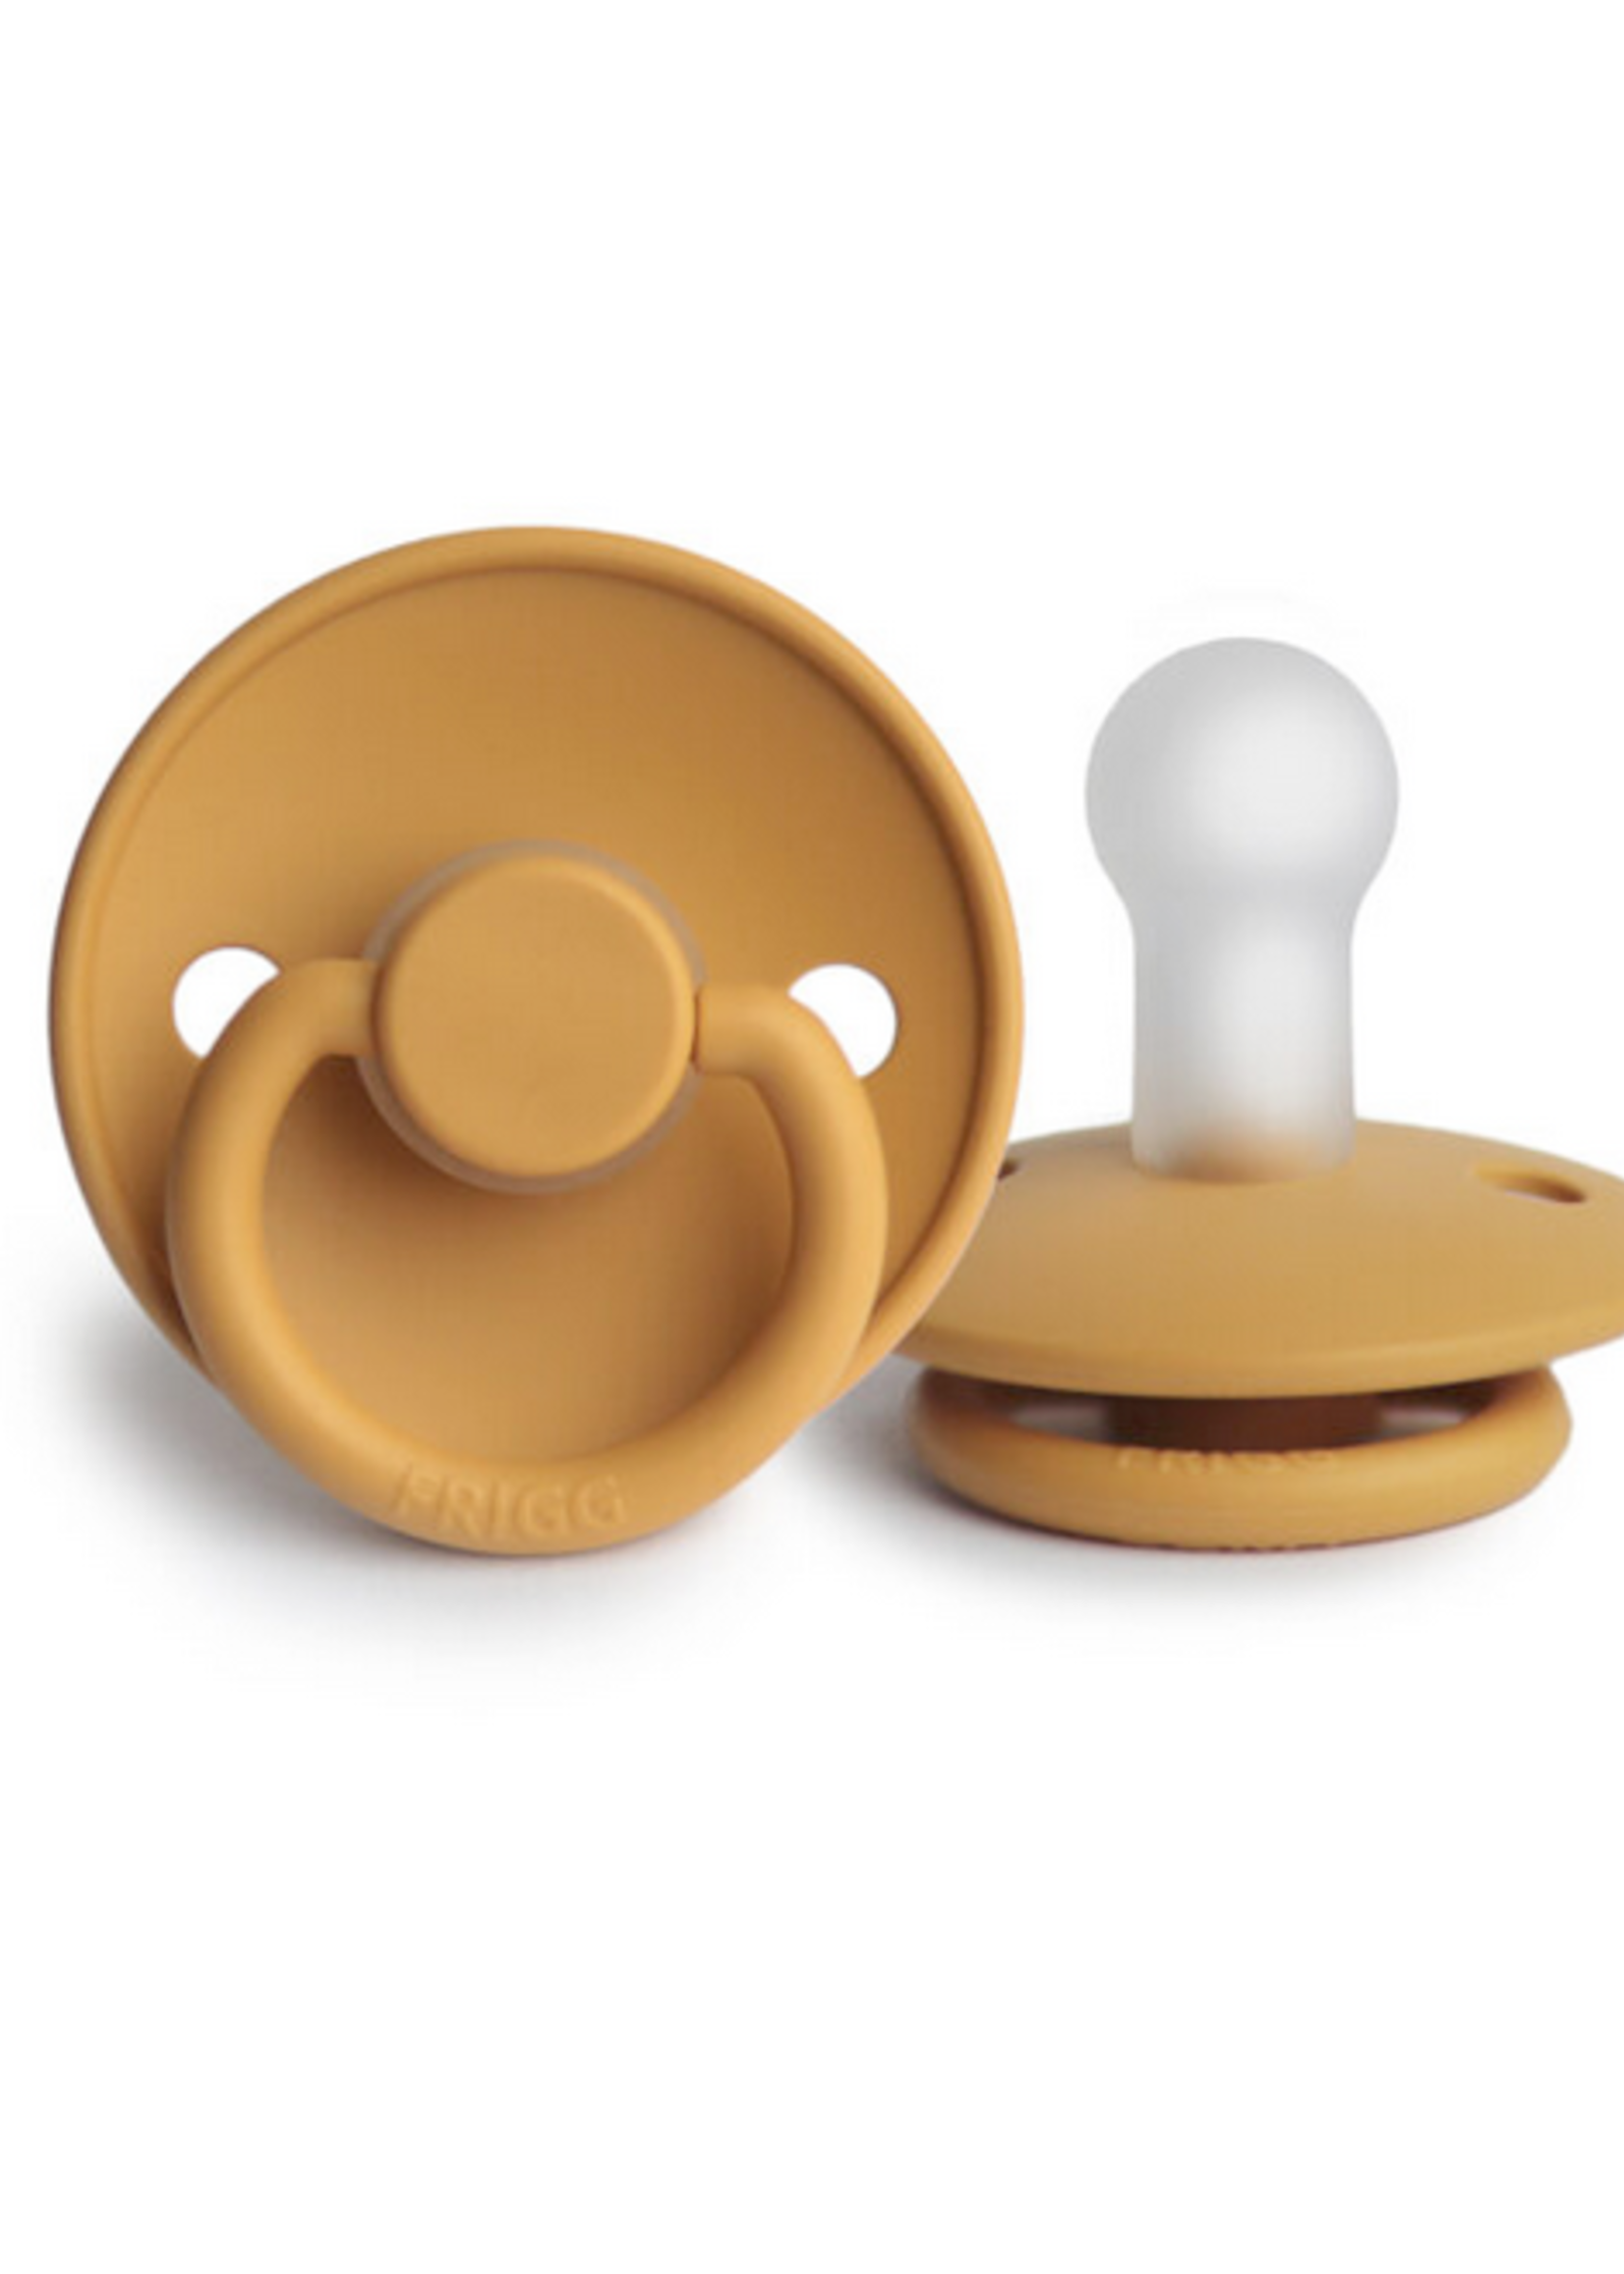 Elitaire Petite FRIGG Silicone Pacifier in Honey Gold (0-6 Months)